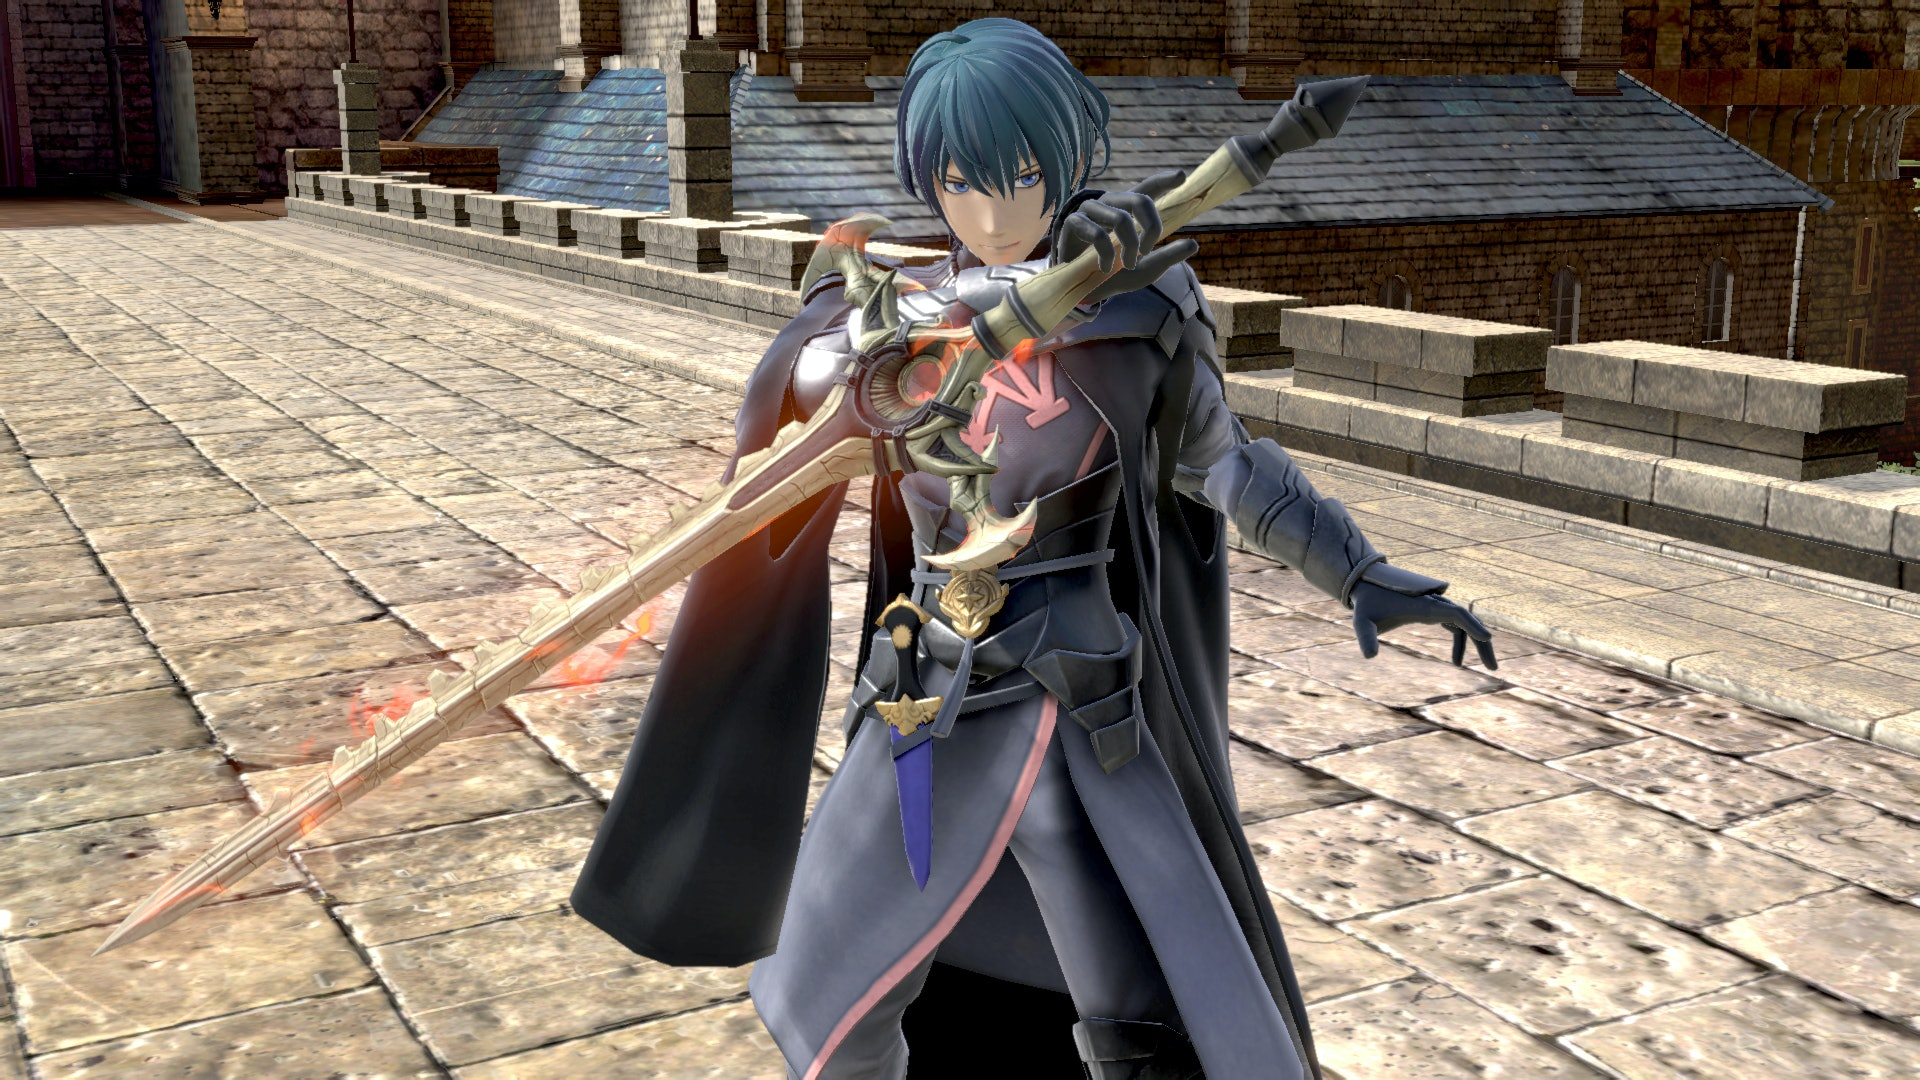 Fire Emblem Byleth Super Smash Bros Ultimate